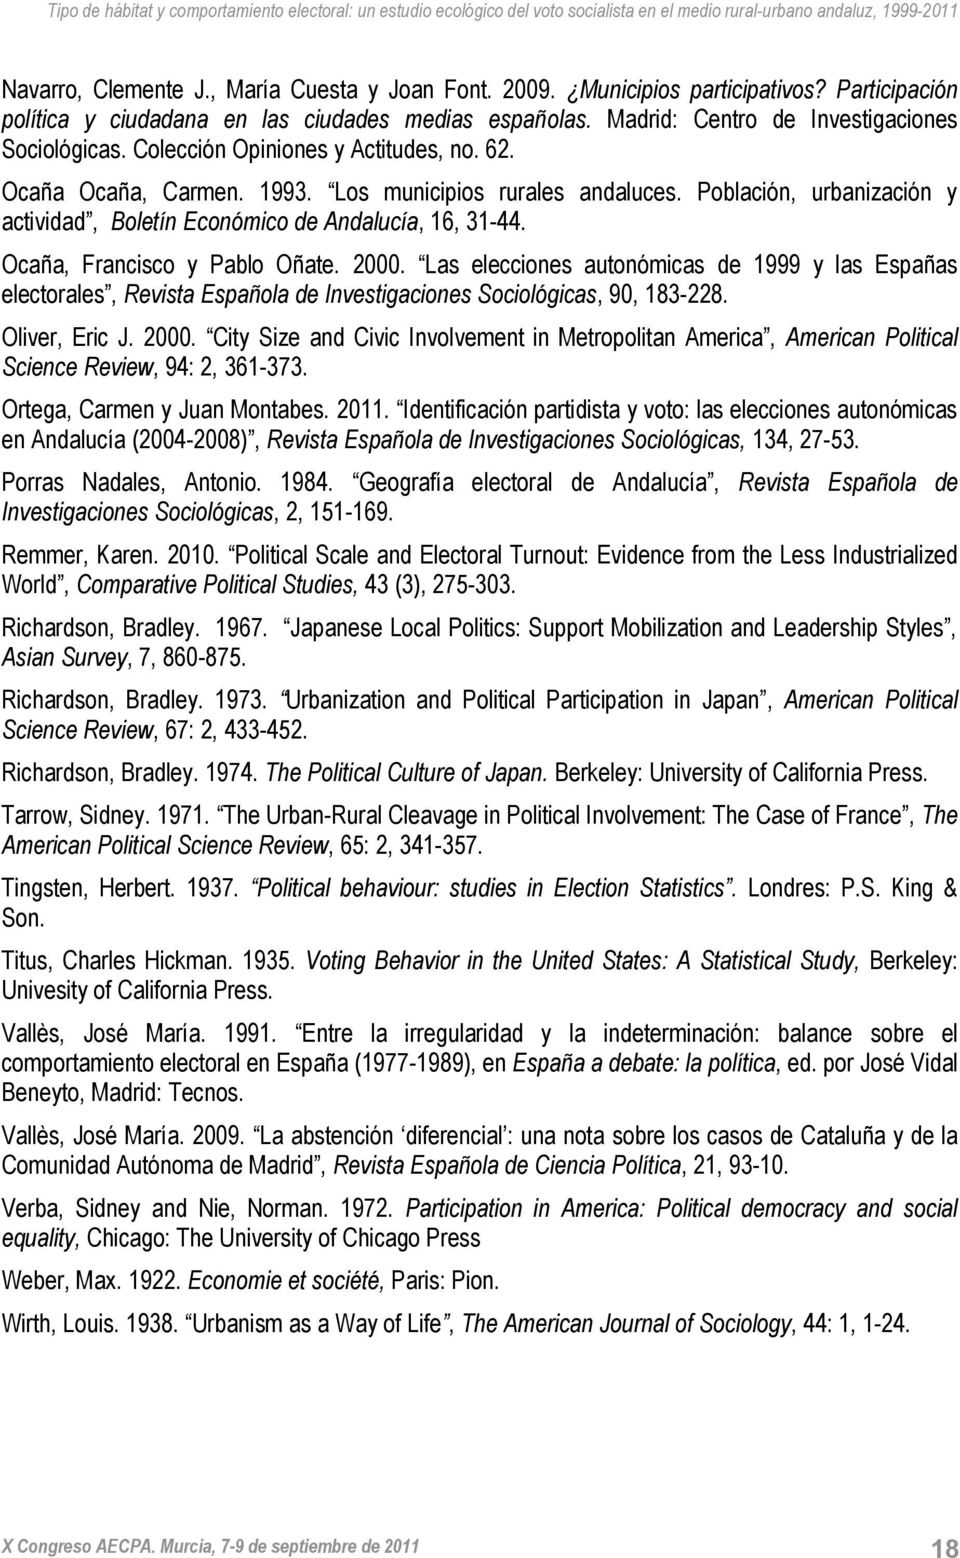 Ocaña, Francisco y Pablo Oñate. 2000. Las elecciones autonómicas de 1999 y las Españas electorales, Revista Española de Investigaciones Sociológicas, 90, 183-228. Oliver, Eric J. 2000. City Size and Civic Involvement in Metropolitan America, American Political Science Review, 94: 2, 361-373.